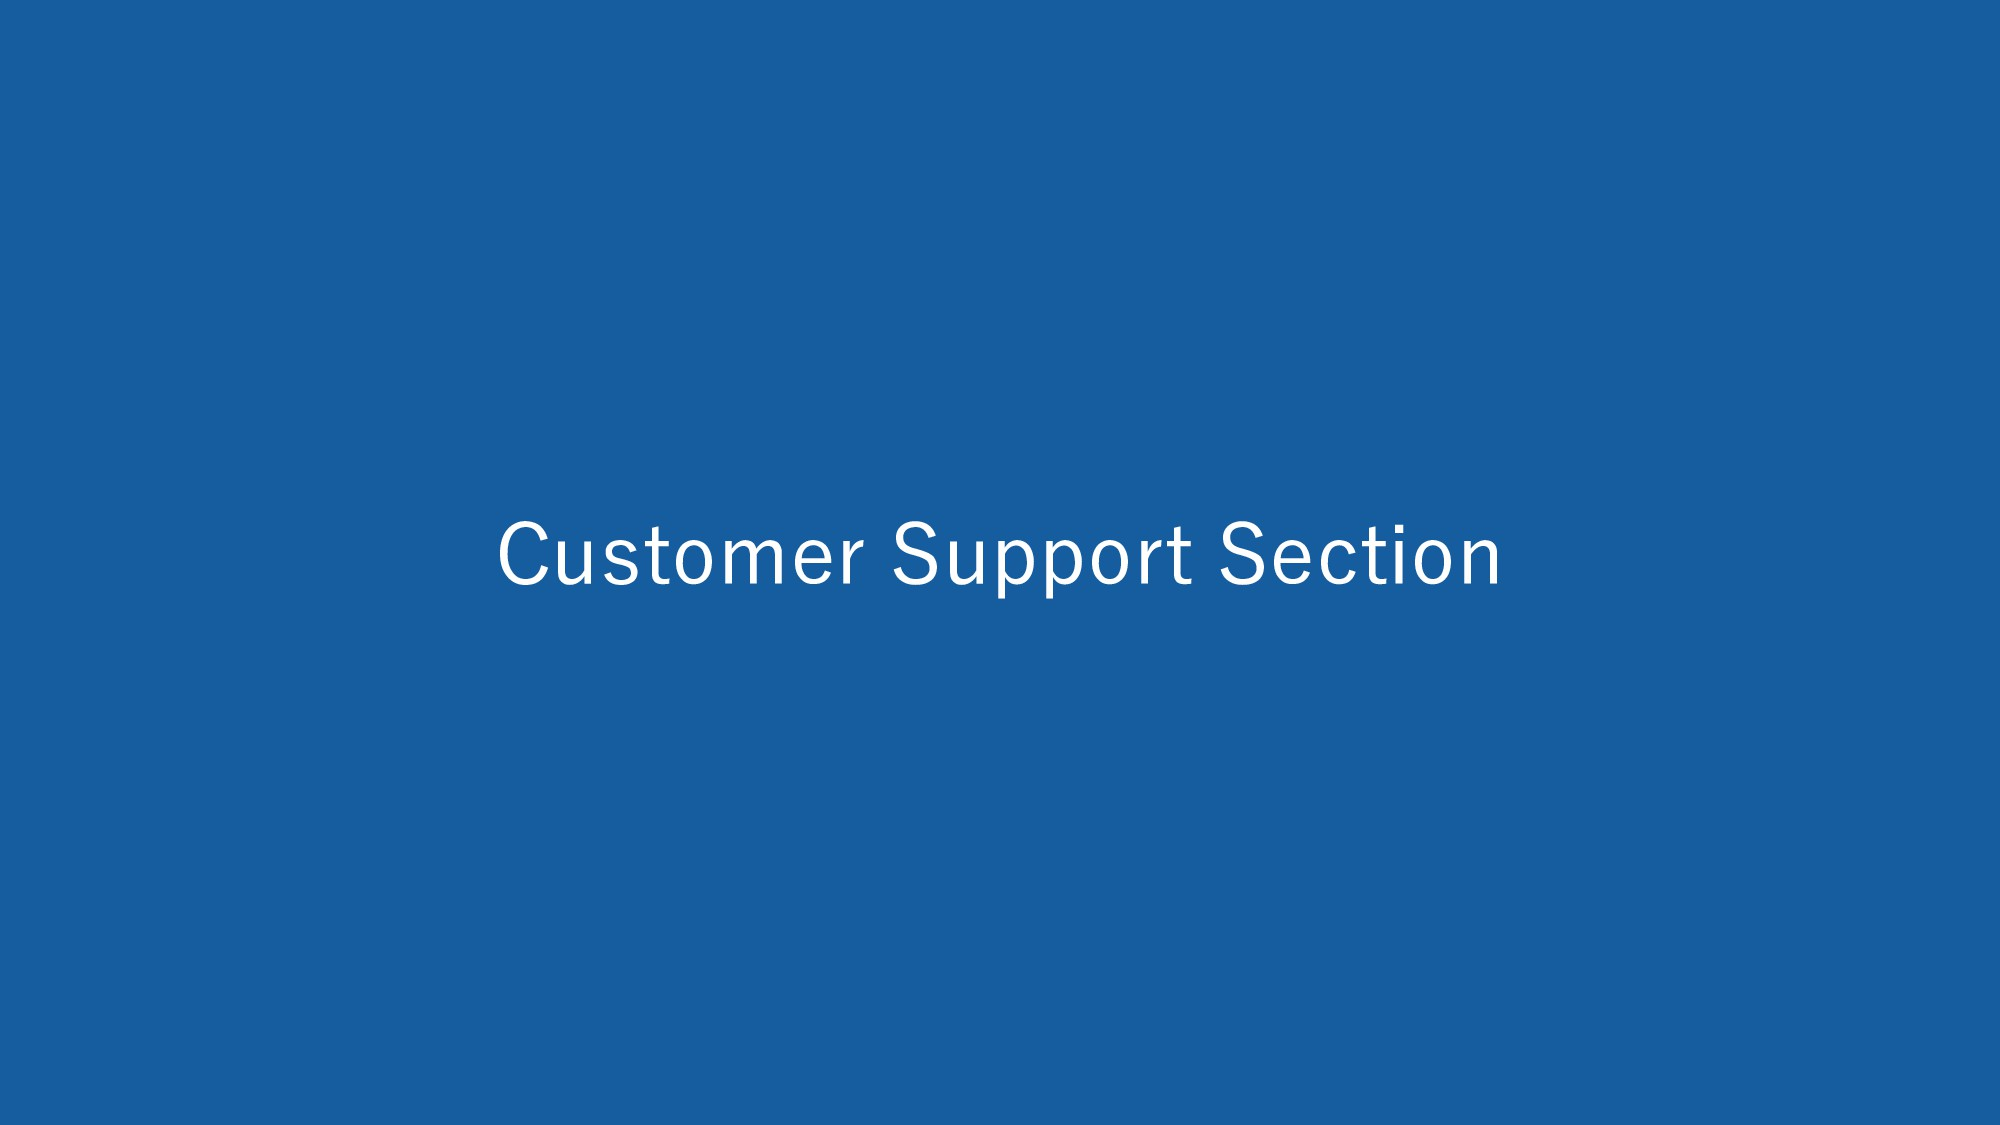 Customer Support Section